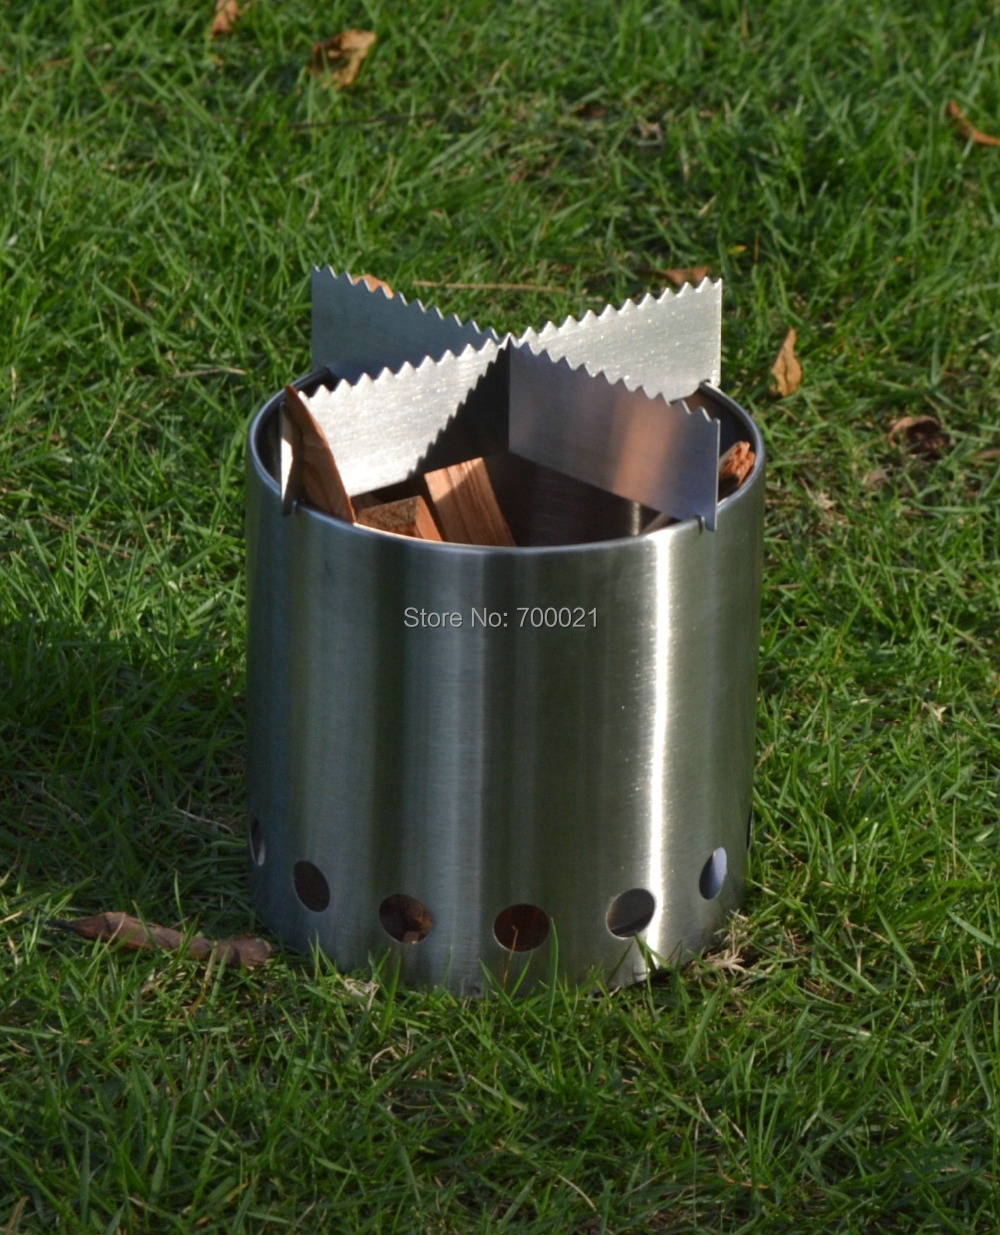 Wood Camping Stove | WB Designs